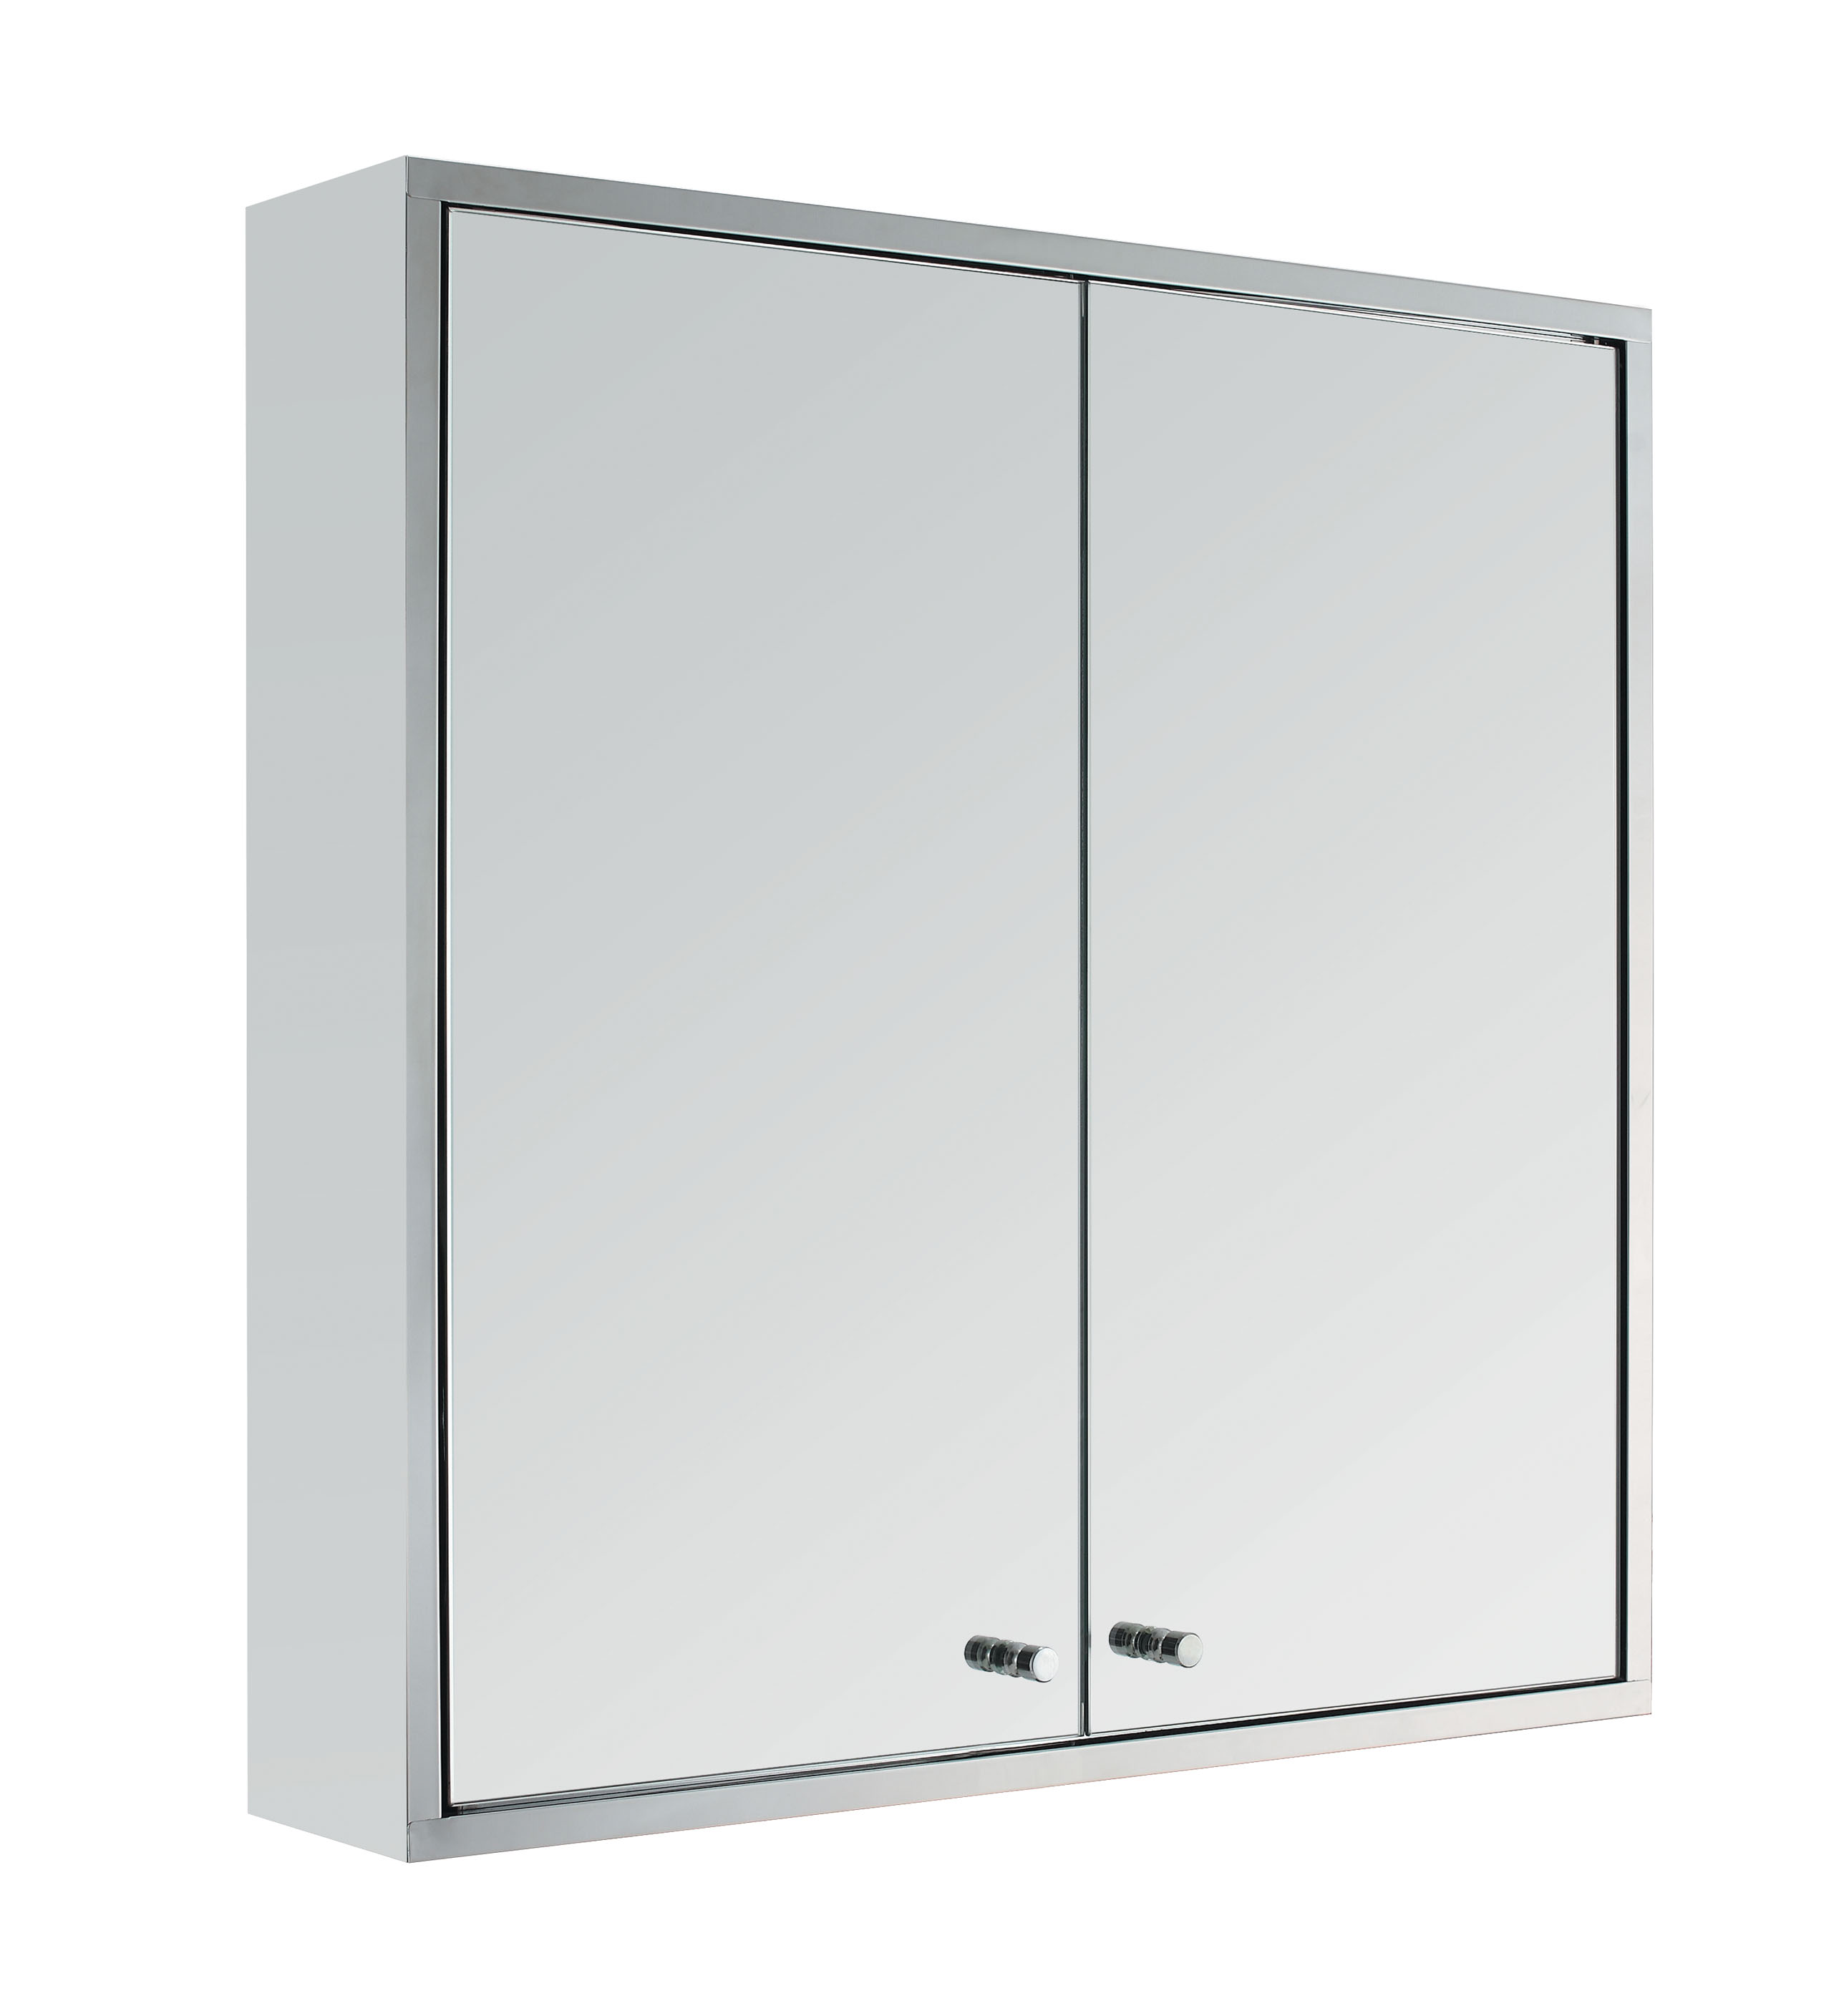 Bathroom Cabinet Mirror Doors Stainless Steel Double Door Wall Mount Bathroom Cabinet